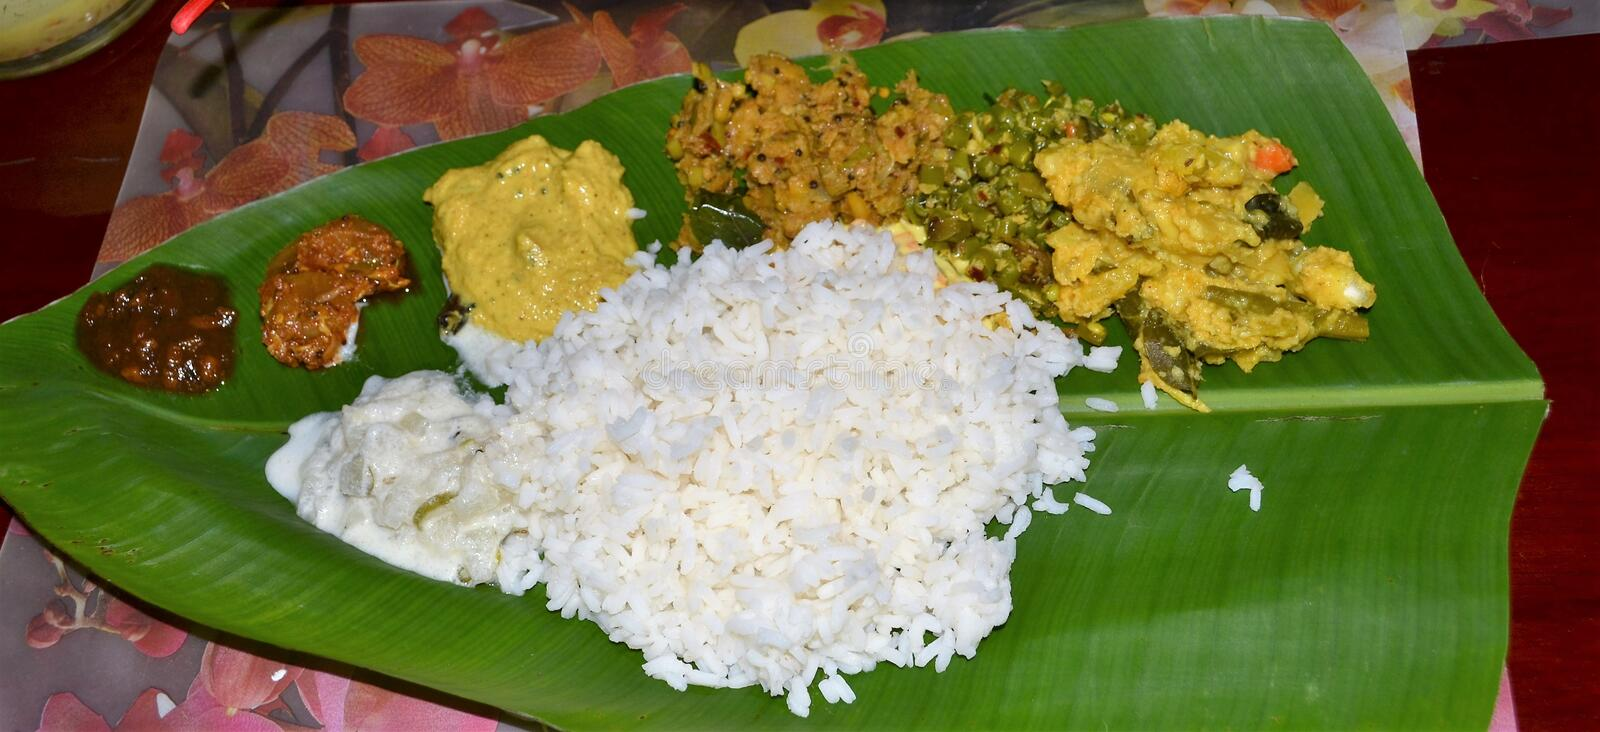 Kerala Banana Leaf Feast. With colourful curries, each having distinct sweet, salty, sour, pungent, bitter & astringent stock photo